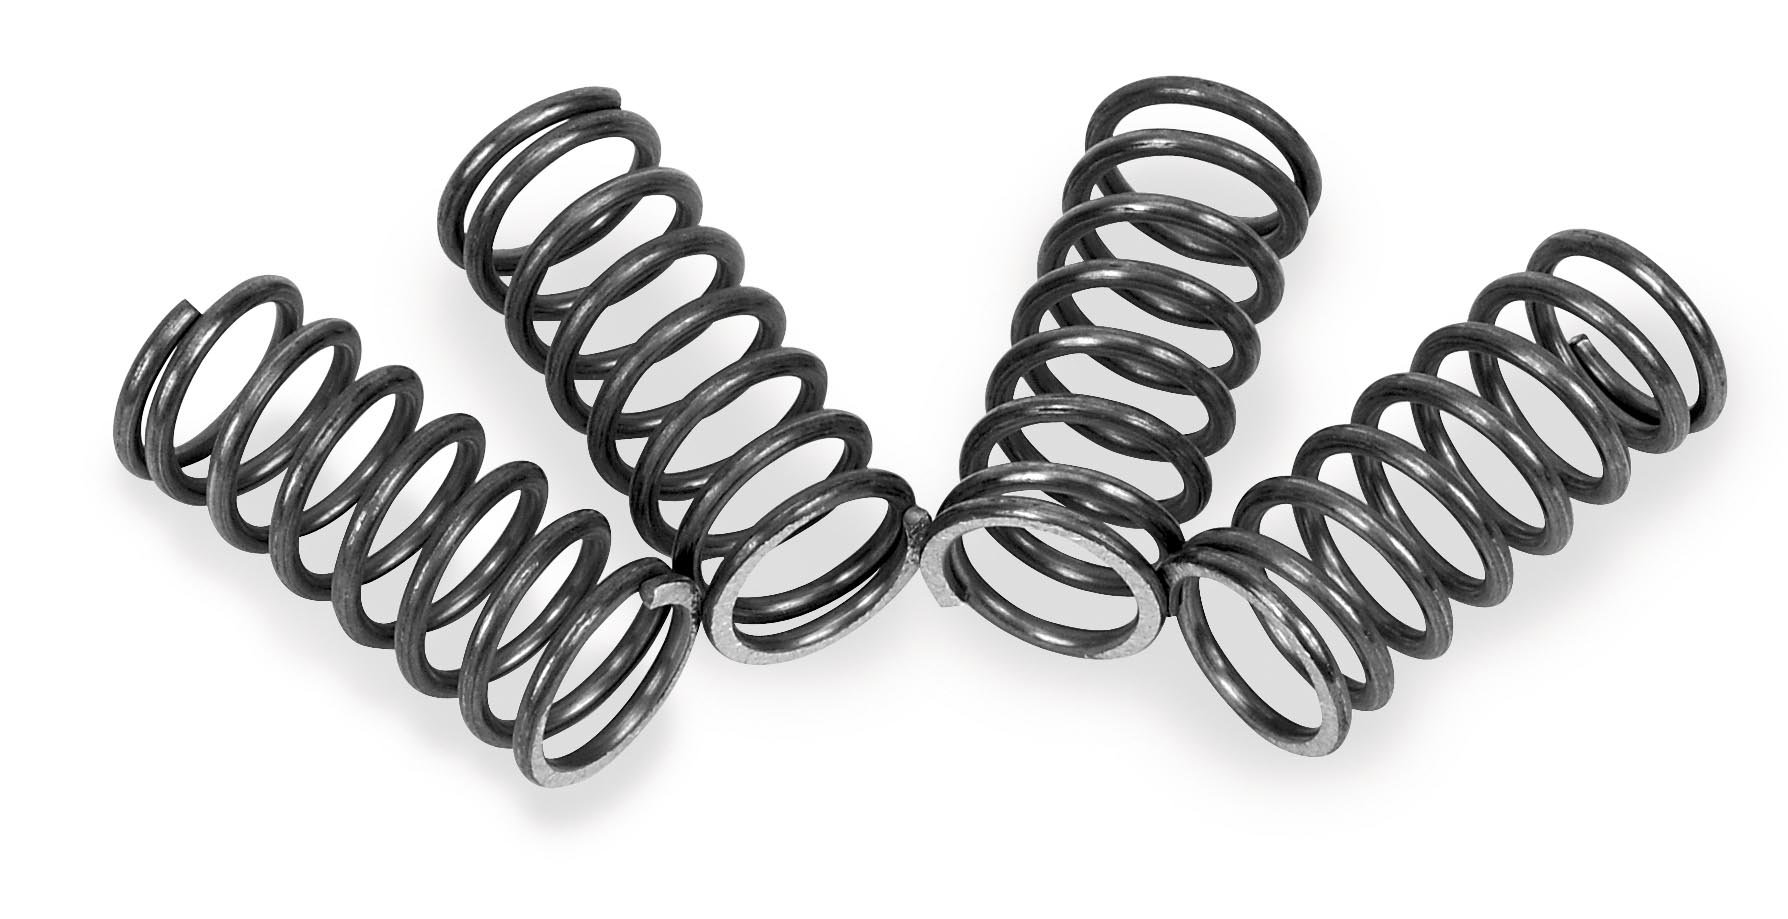 Bbr Motorsports Hd Clutch Springs Crf150f 03 410-hcf-1501